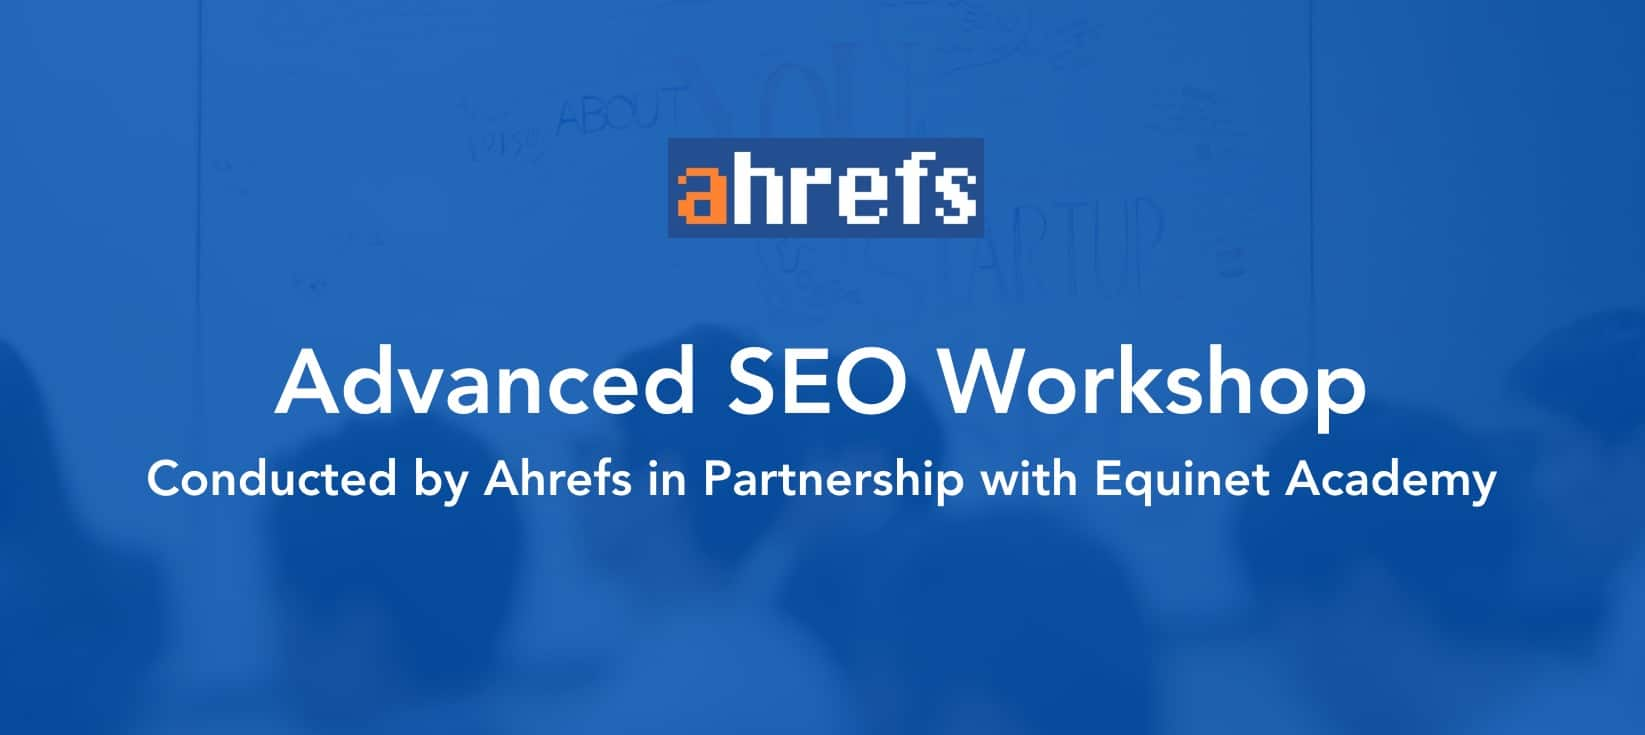 3-Hour Advanced SEO Workshop Conducted by Ahrefs in Partnership with Equinet Academy